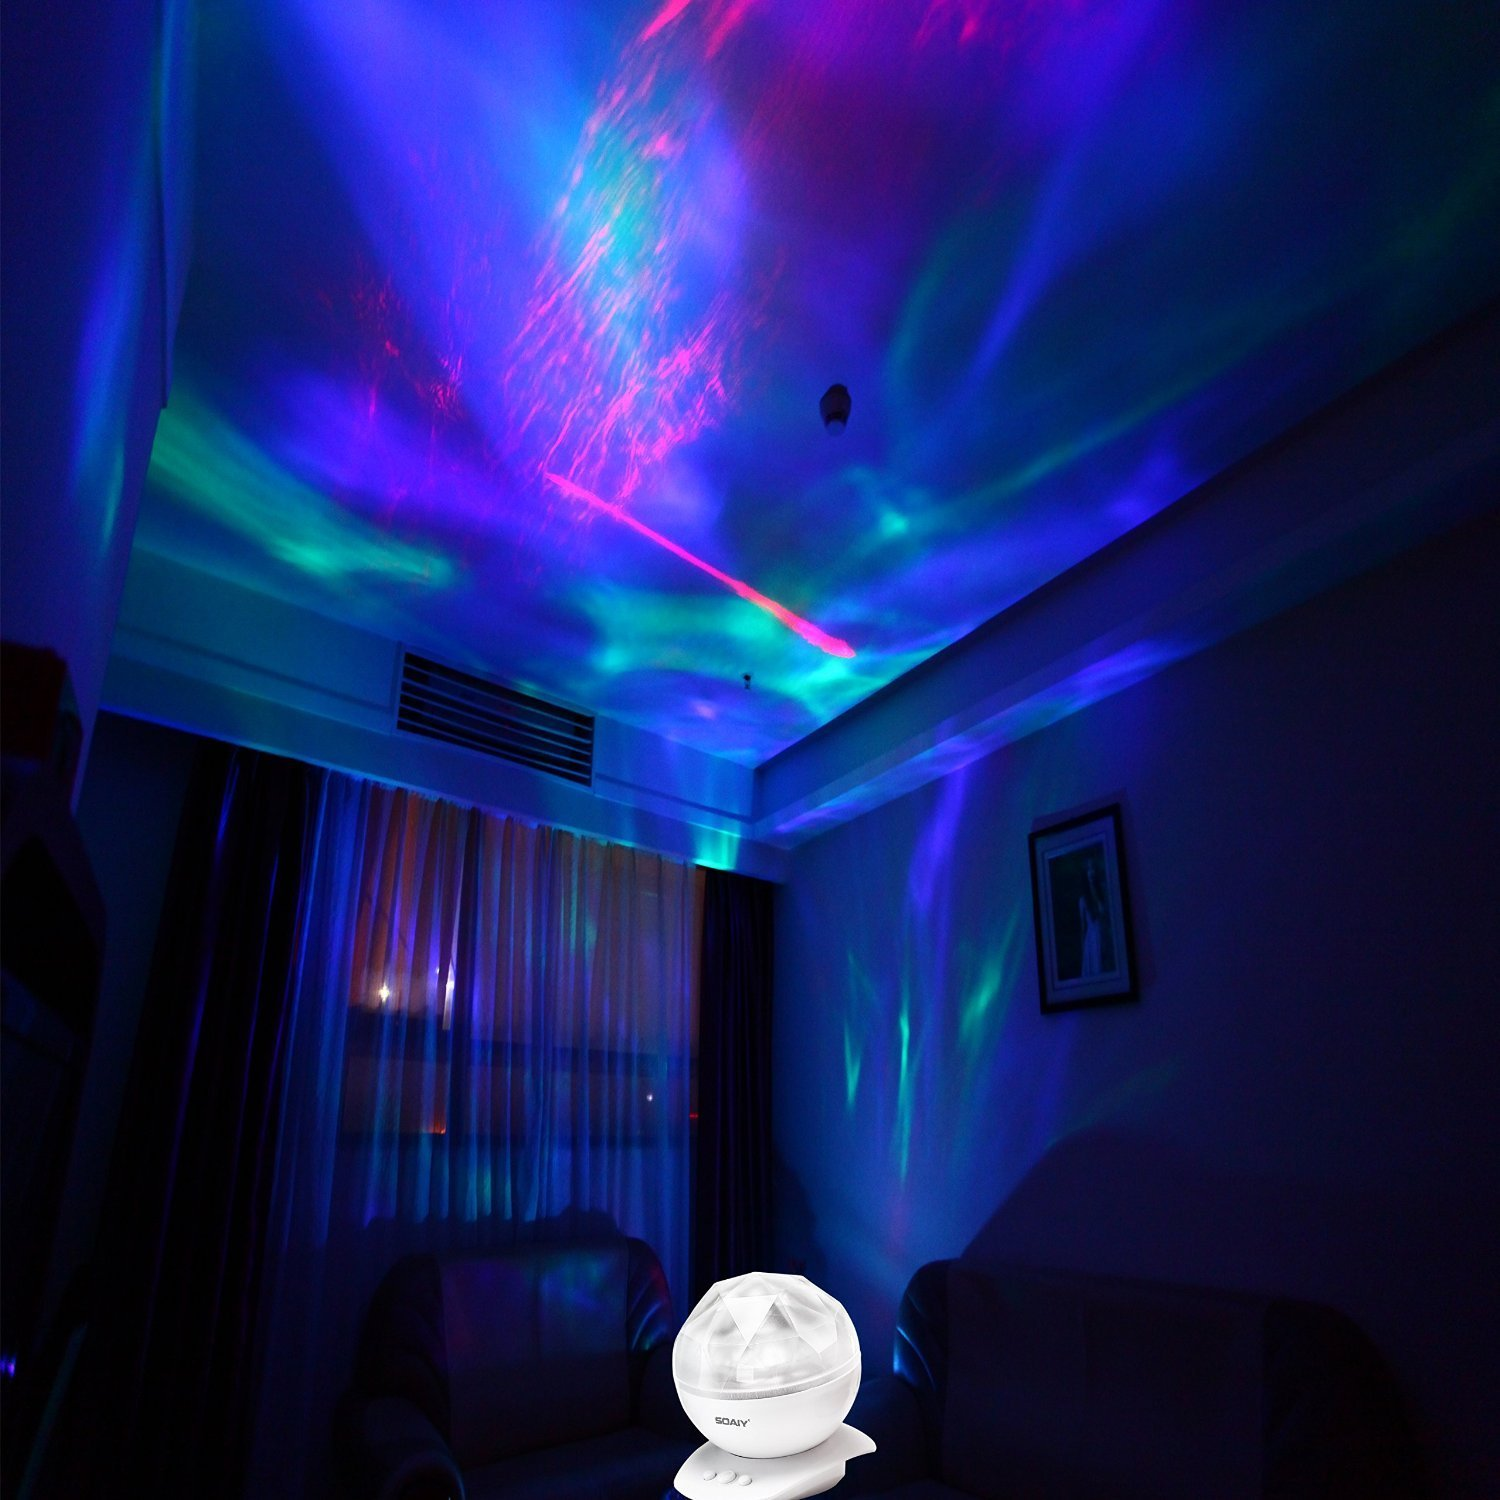 Bedroom Colors Pictures Mood Lighting Bedroom Classic Bedroom Ceiling Design Bedroom Ideas Hgtv: Baby Night Light Ceiling Projector